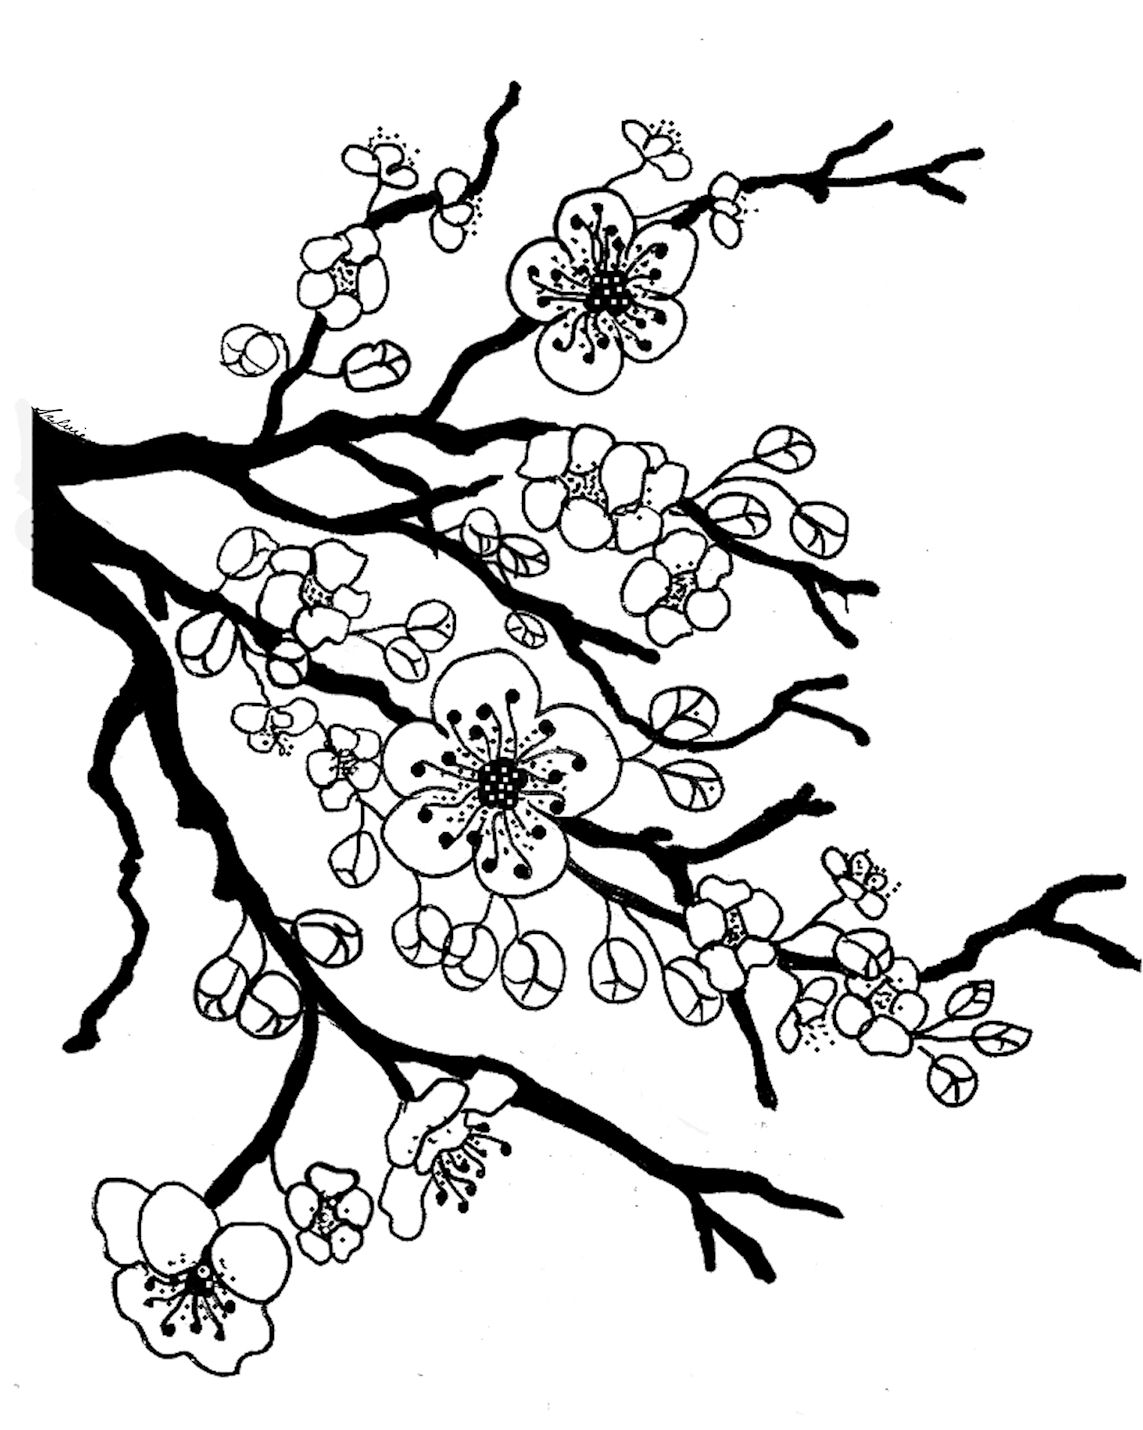 1143x1430 Drawn Cherry Blossom Peach 916x864 Apple Tree Coloring Page At Book